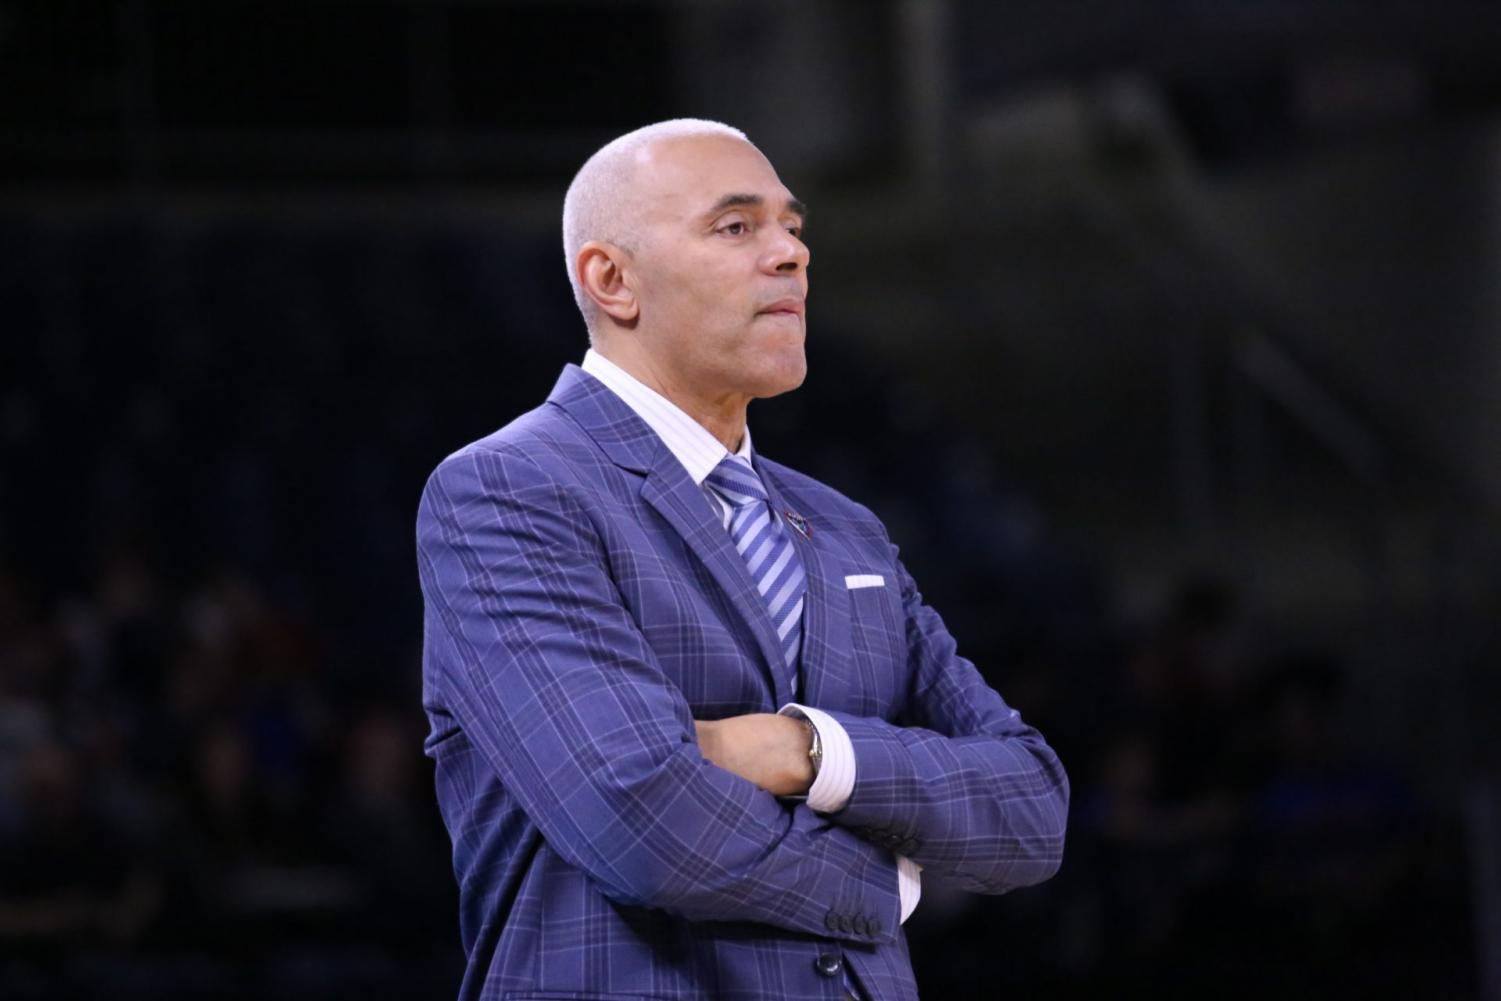 DePaul head coach Dave Leitao looks on during the Blue Demons' game against Cornell on Saturday at Wintrust Arena,